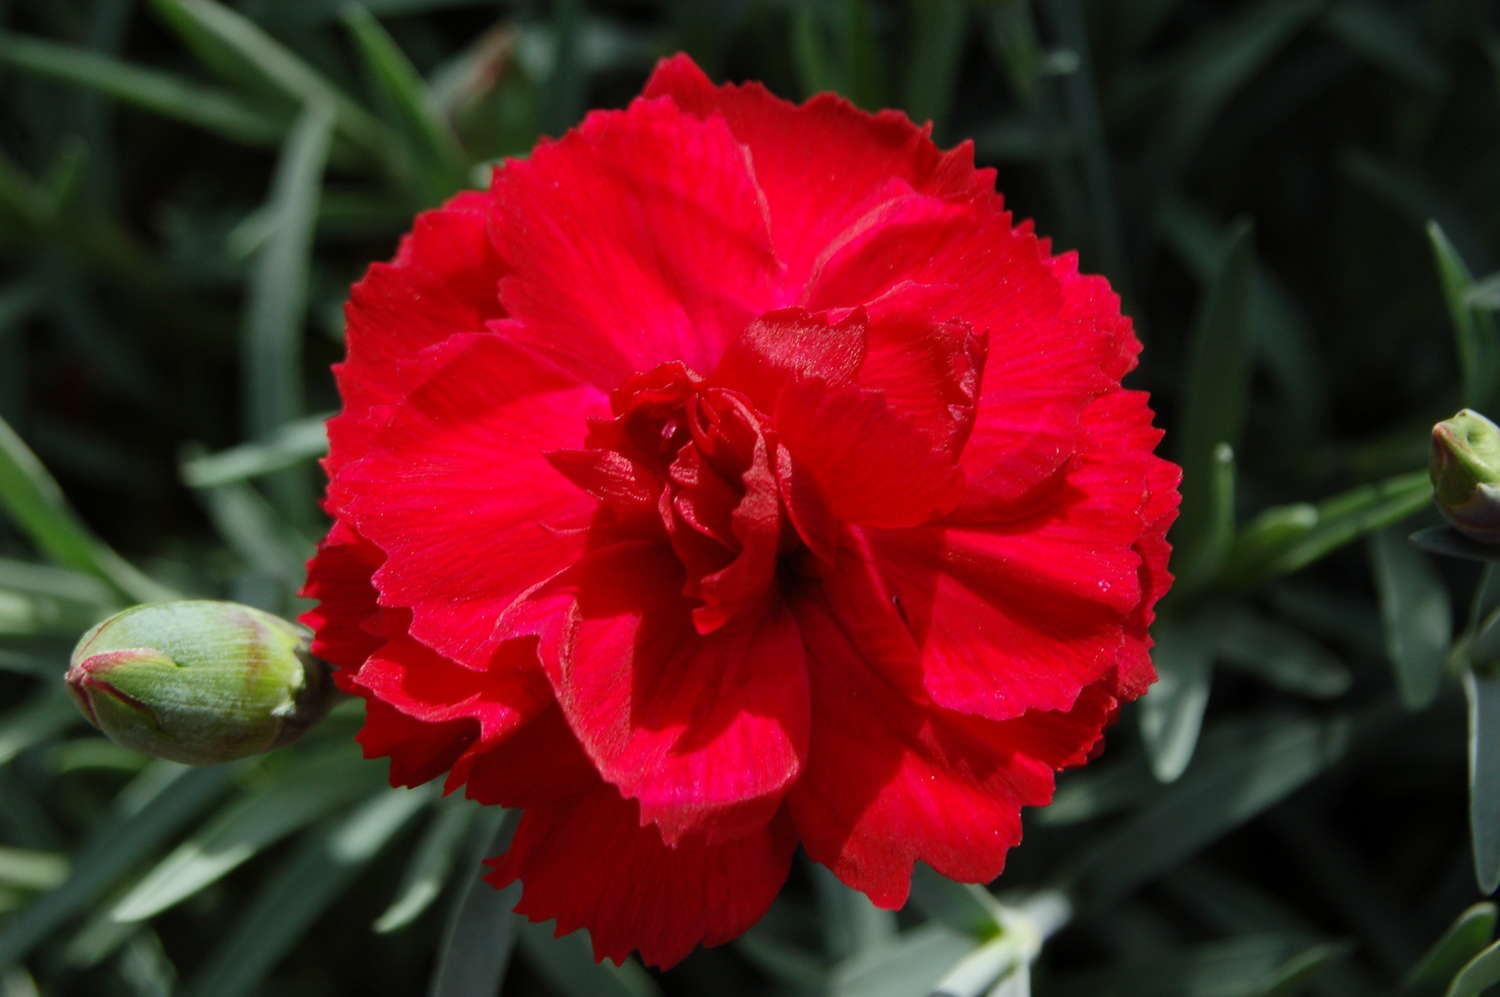 Dianthus 'Early Bird Radiance' From PlantHaven